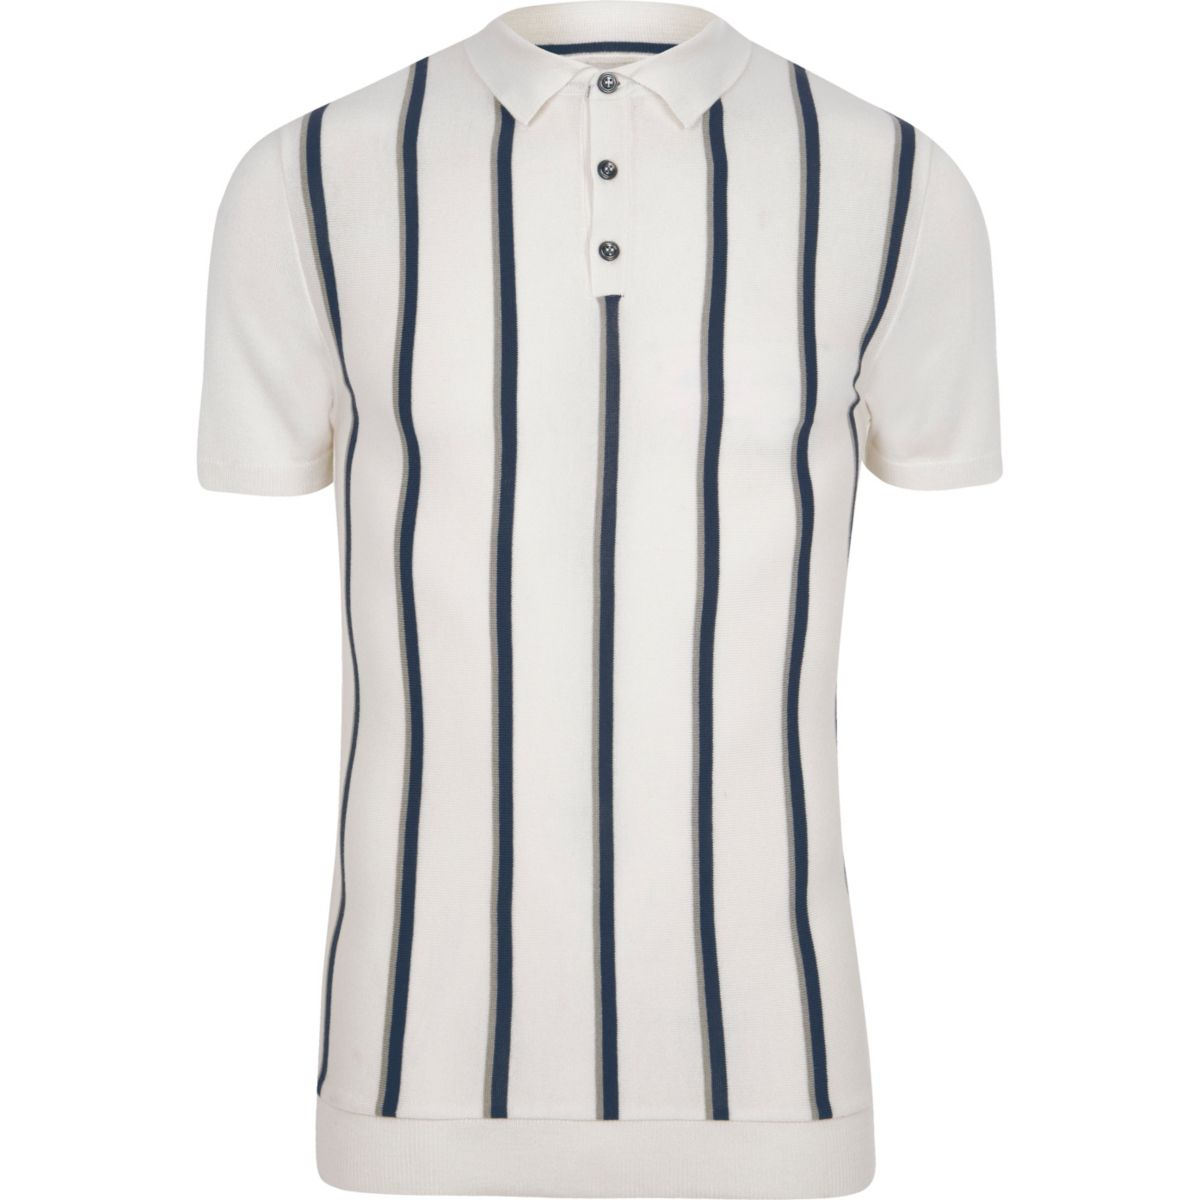 Cream stripe muscle fit knitted polo shirt